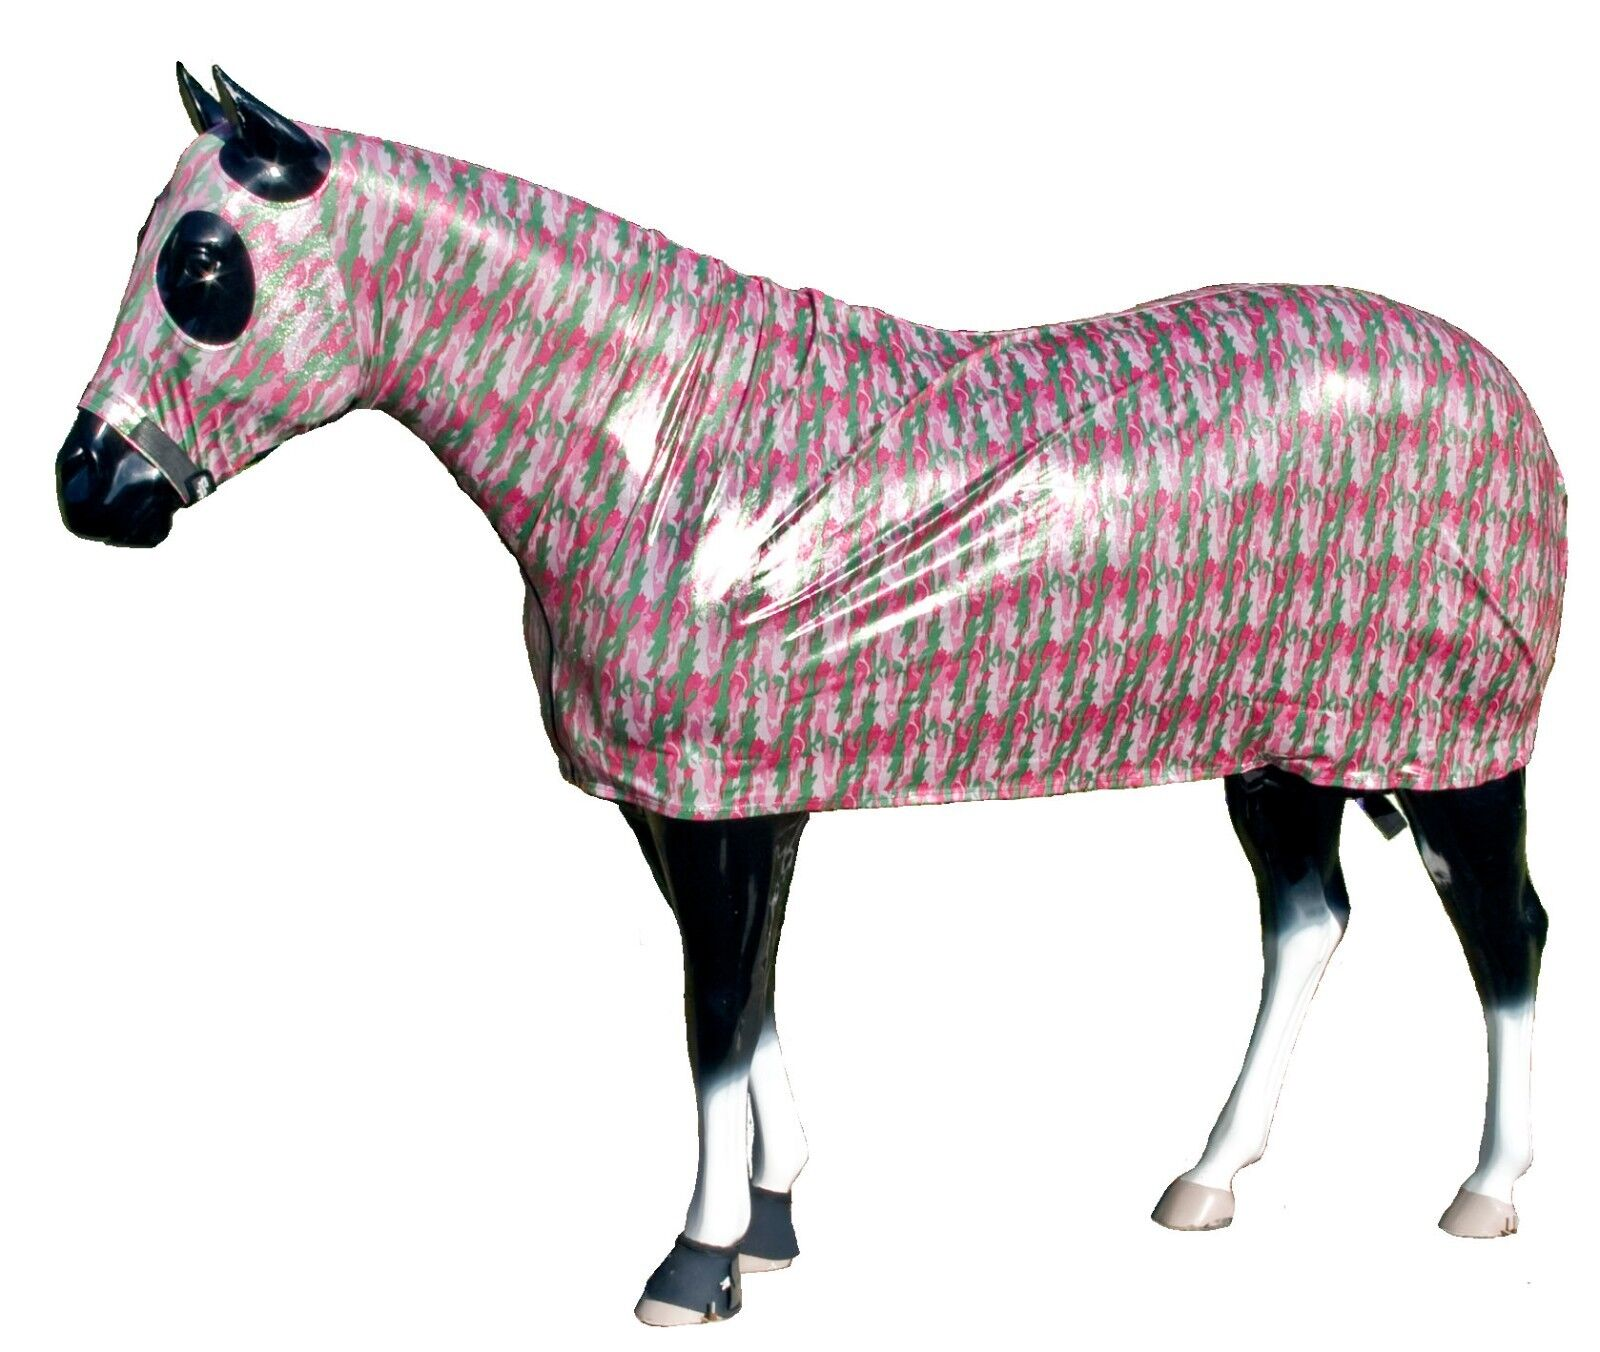 Sleazy Sleepwear for Horses Full Body Assorted Prints & Foils Size Small (66-70)